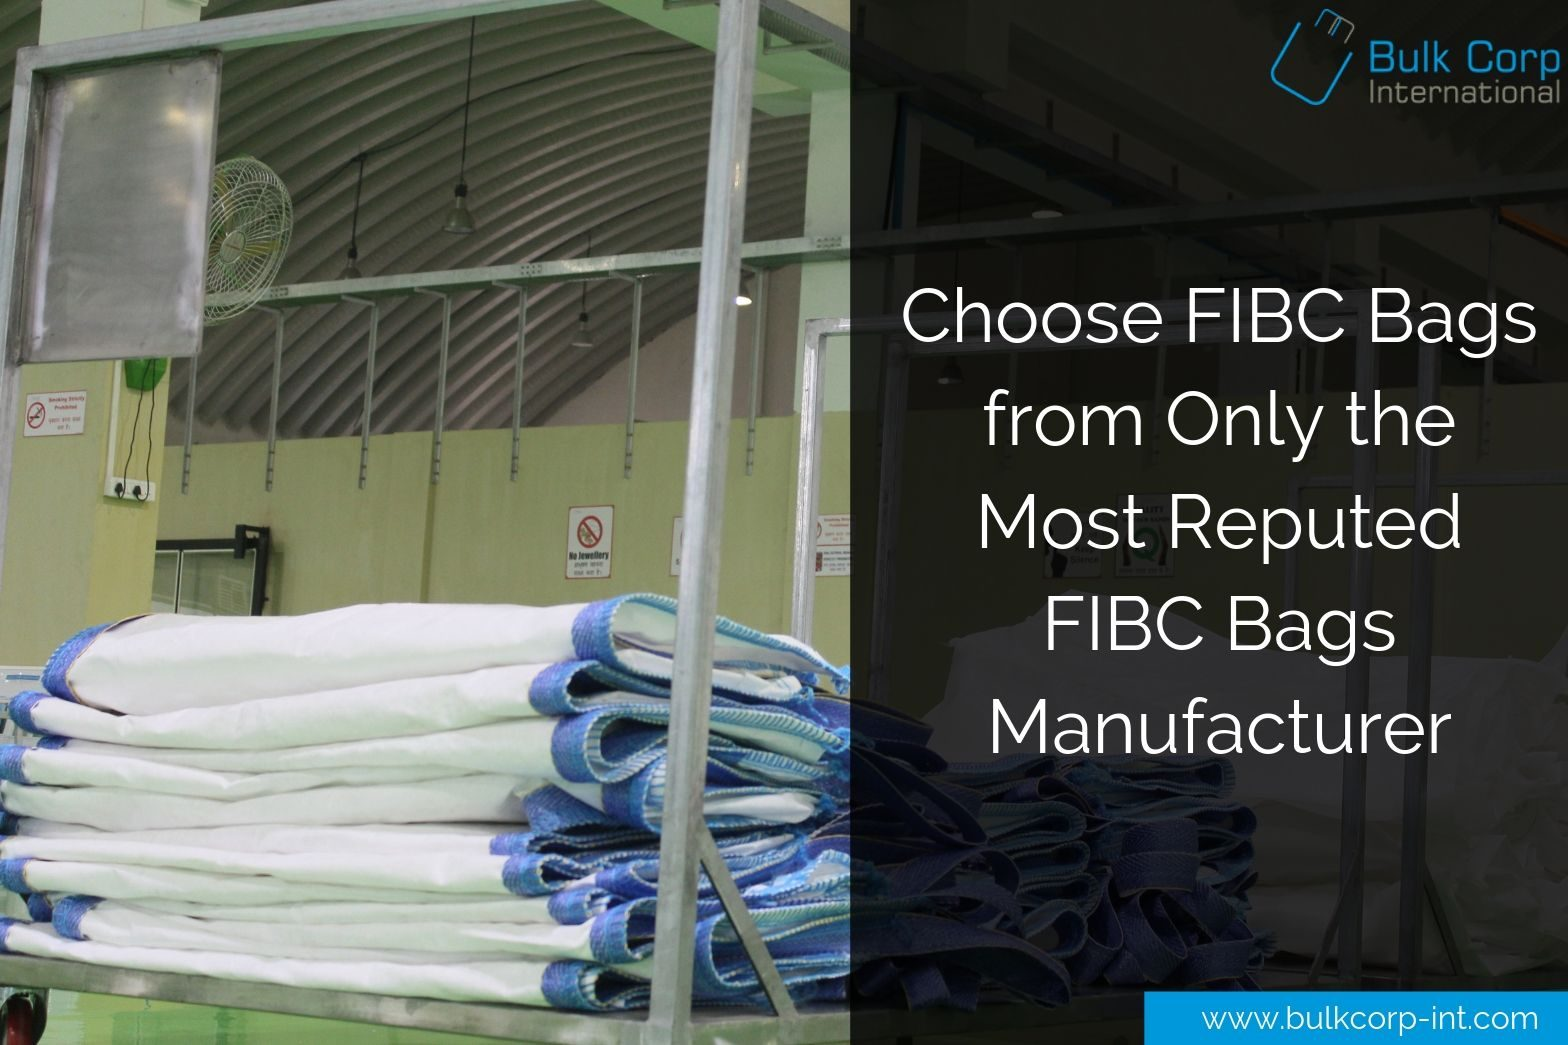 Choose FIBC Bags from Only the Most Reputed FIBC Bags Manufacturer